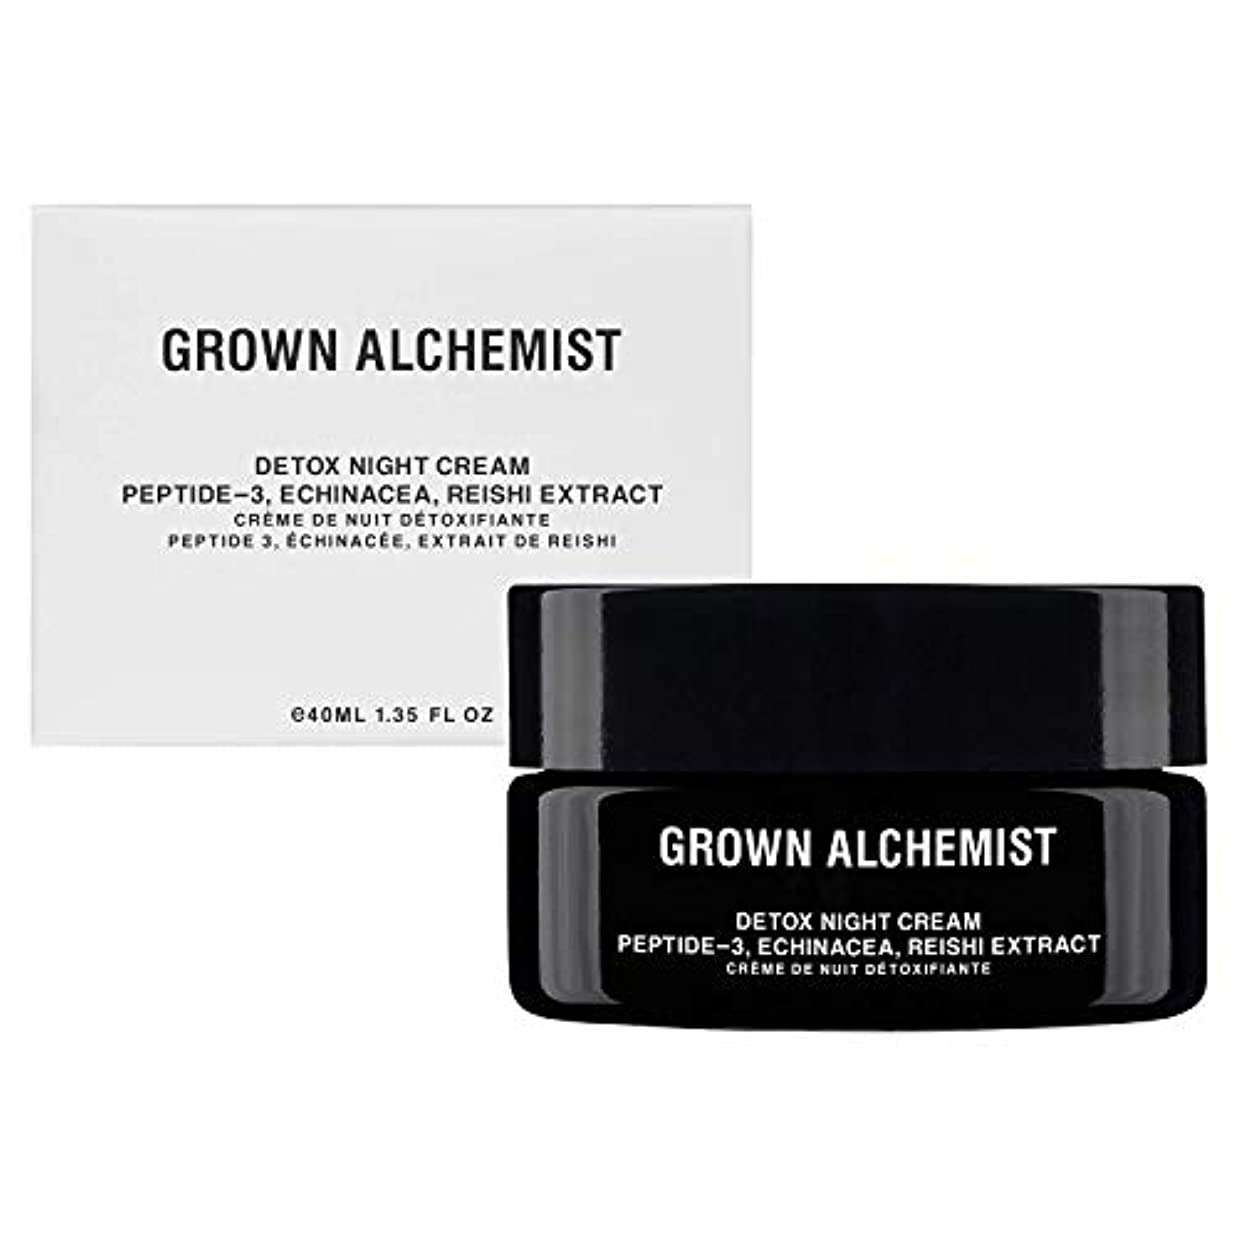 進行中オズワルドオッズGrown Alchemist Detox Night Cream - Peptide-3, Echinacea & Reishi Extract 40ml/1.35oz並行輸入品